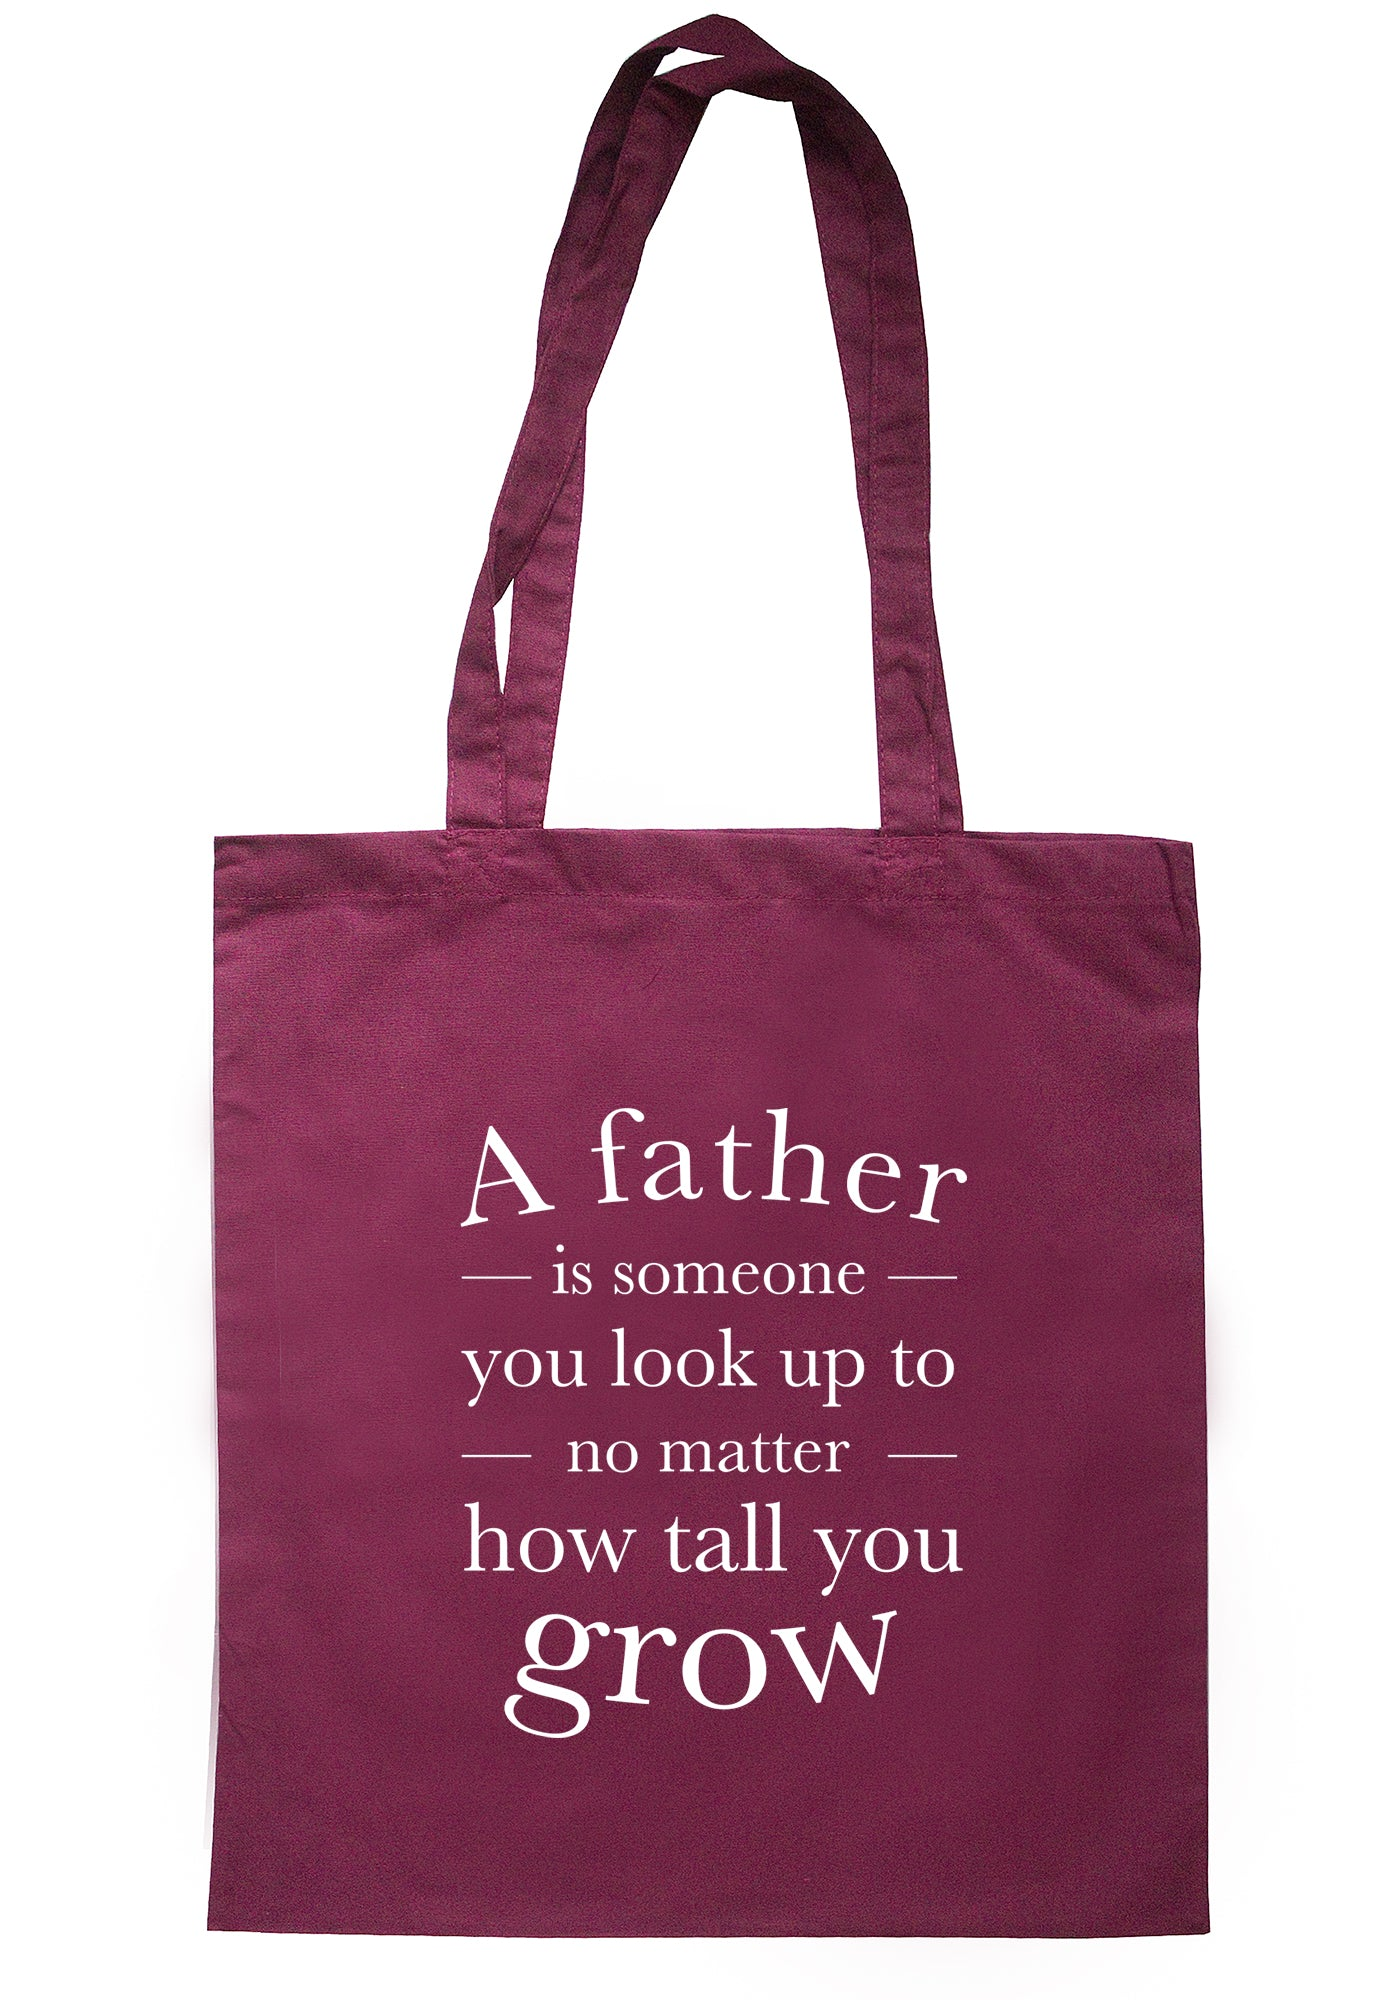 A Father Is Someone You look Up To No Matter How Tall You Grow Tote Bag S0719